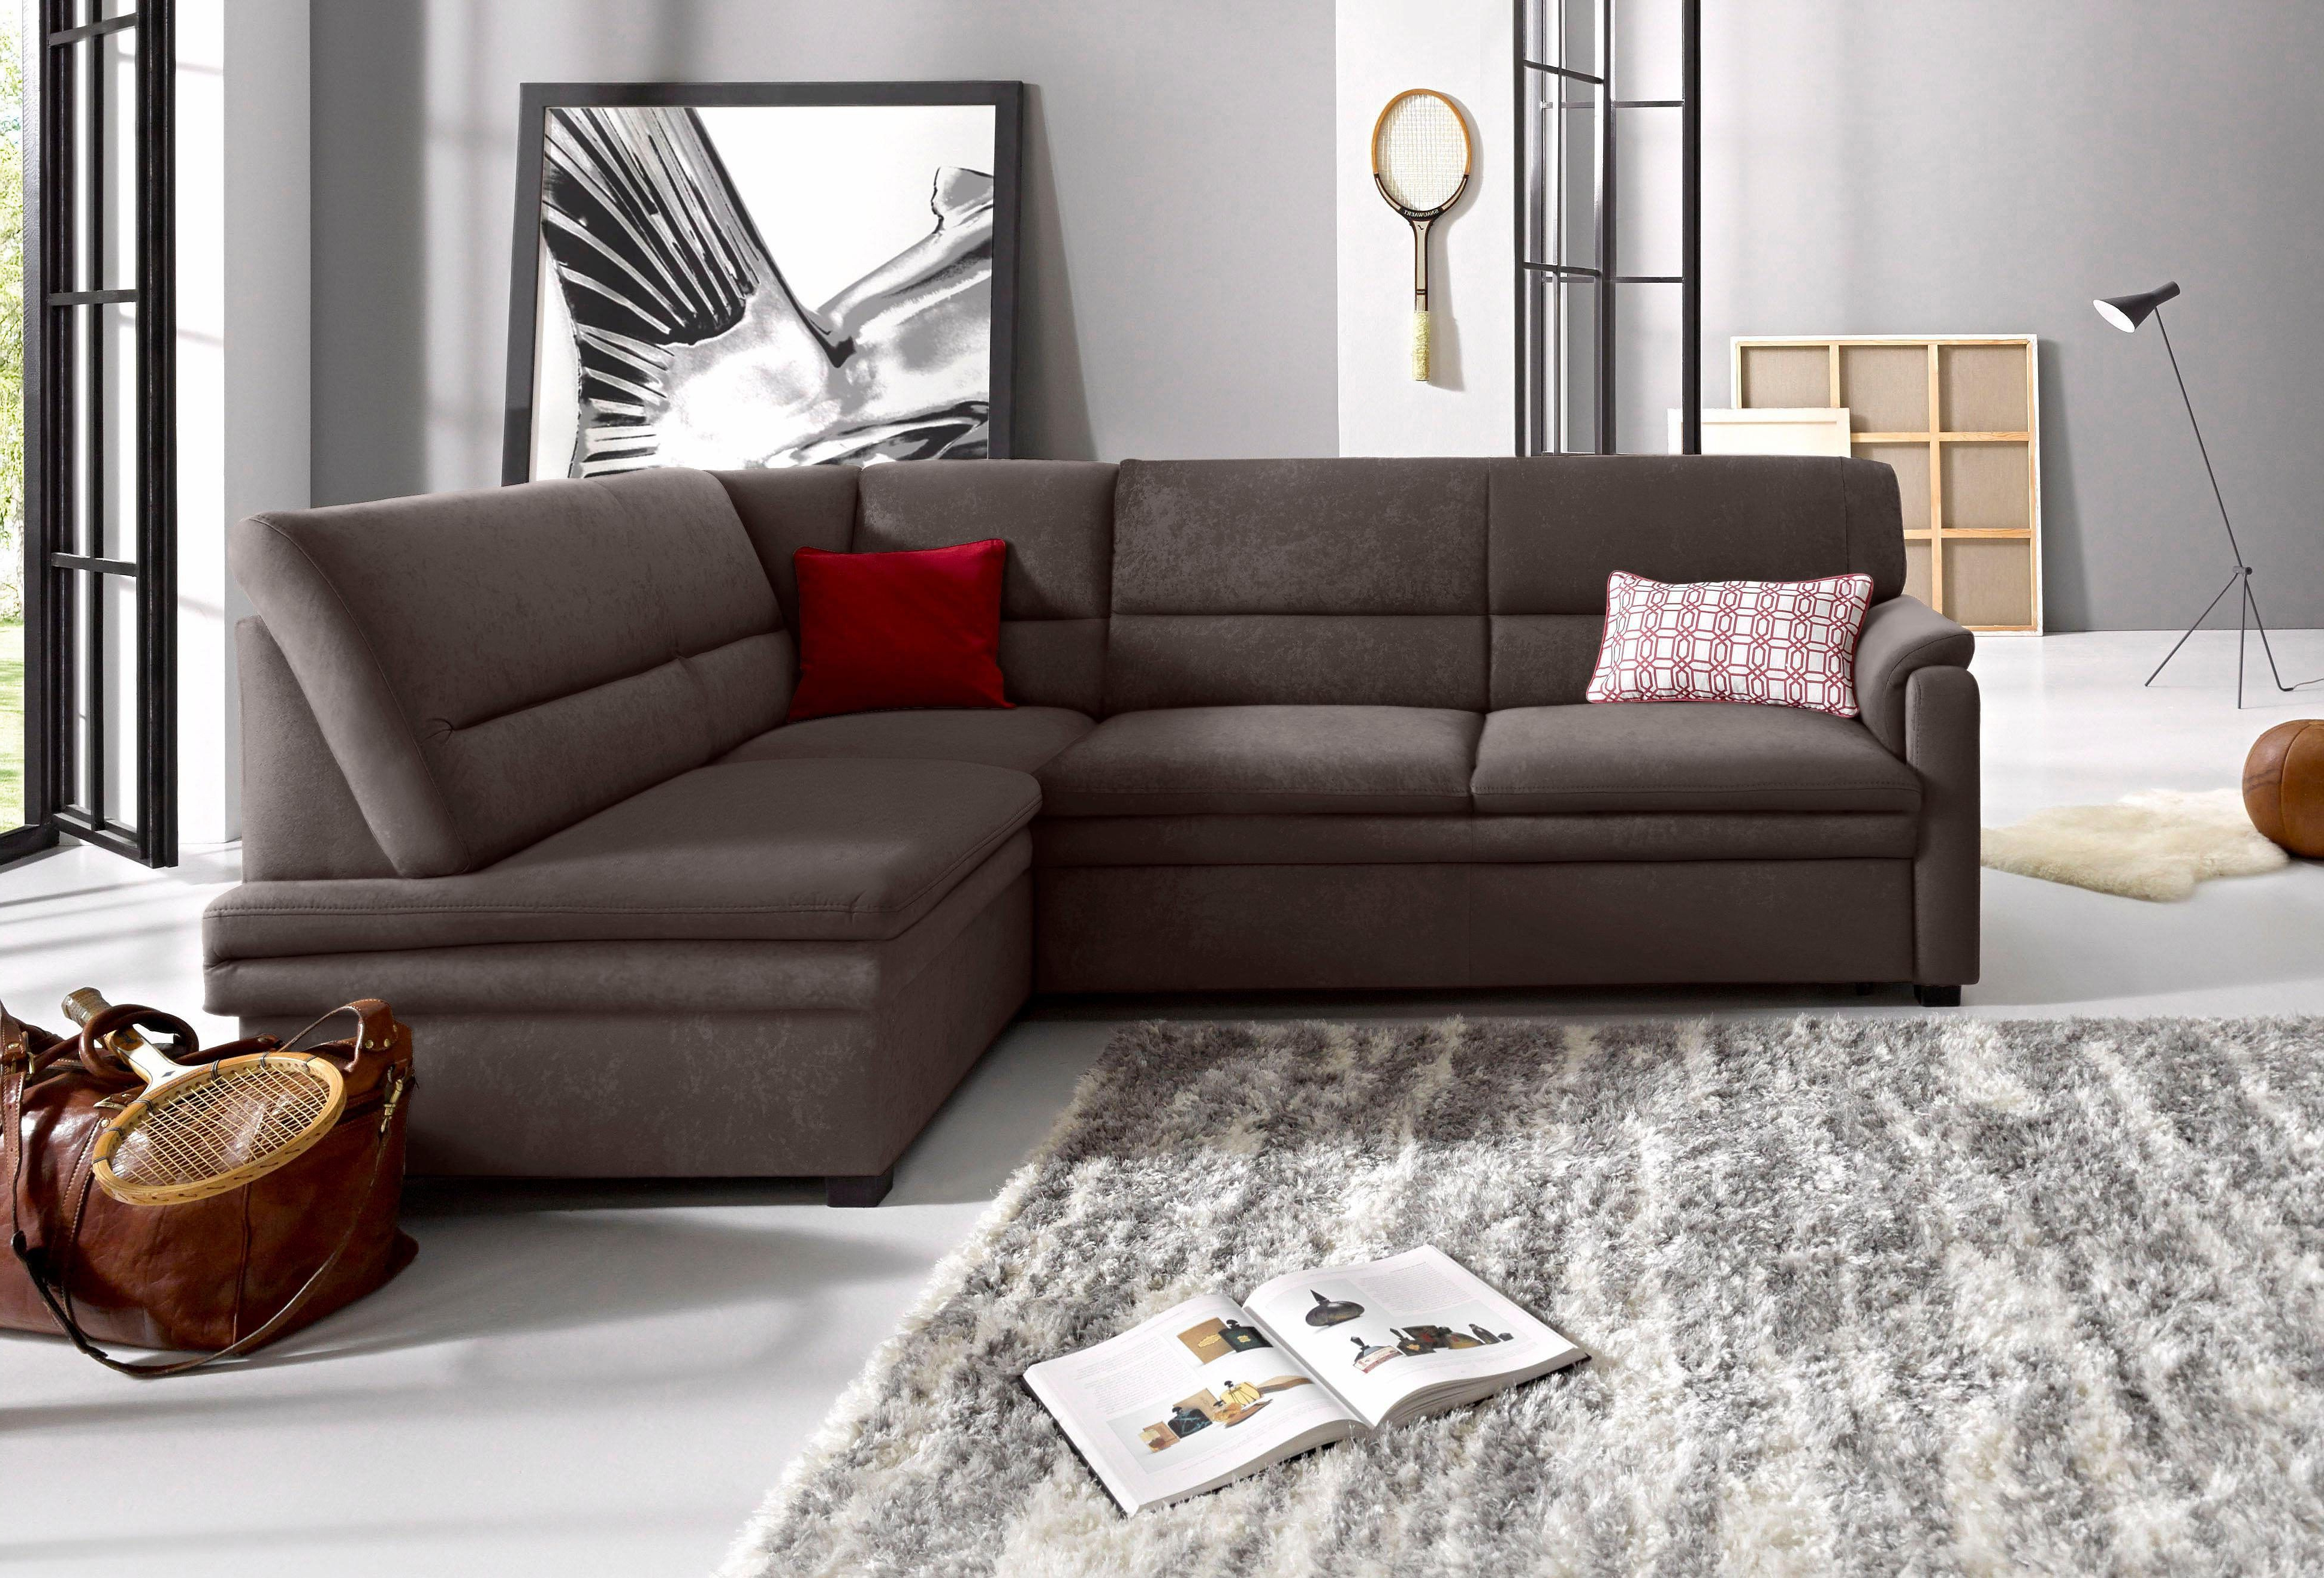 2018 Furniture Andersen Sofa Doze Freedom Maddox Support Black Zee Intended For Maddox Oversized Sofa Chairs (View 1 of 20)